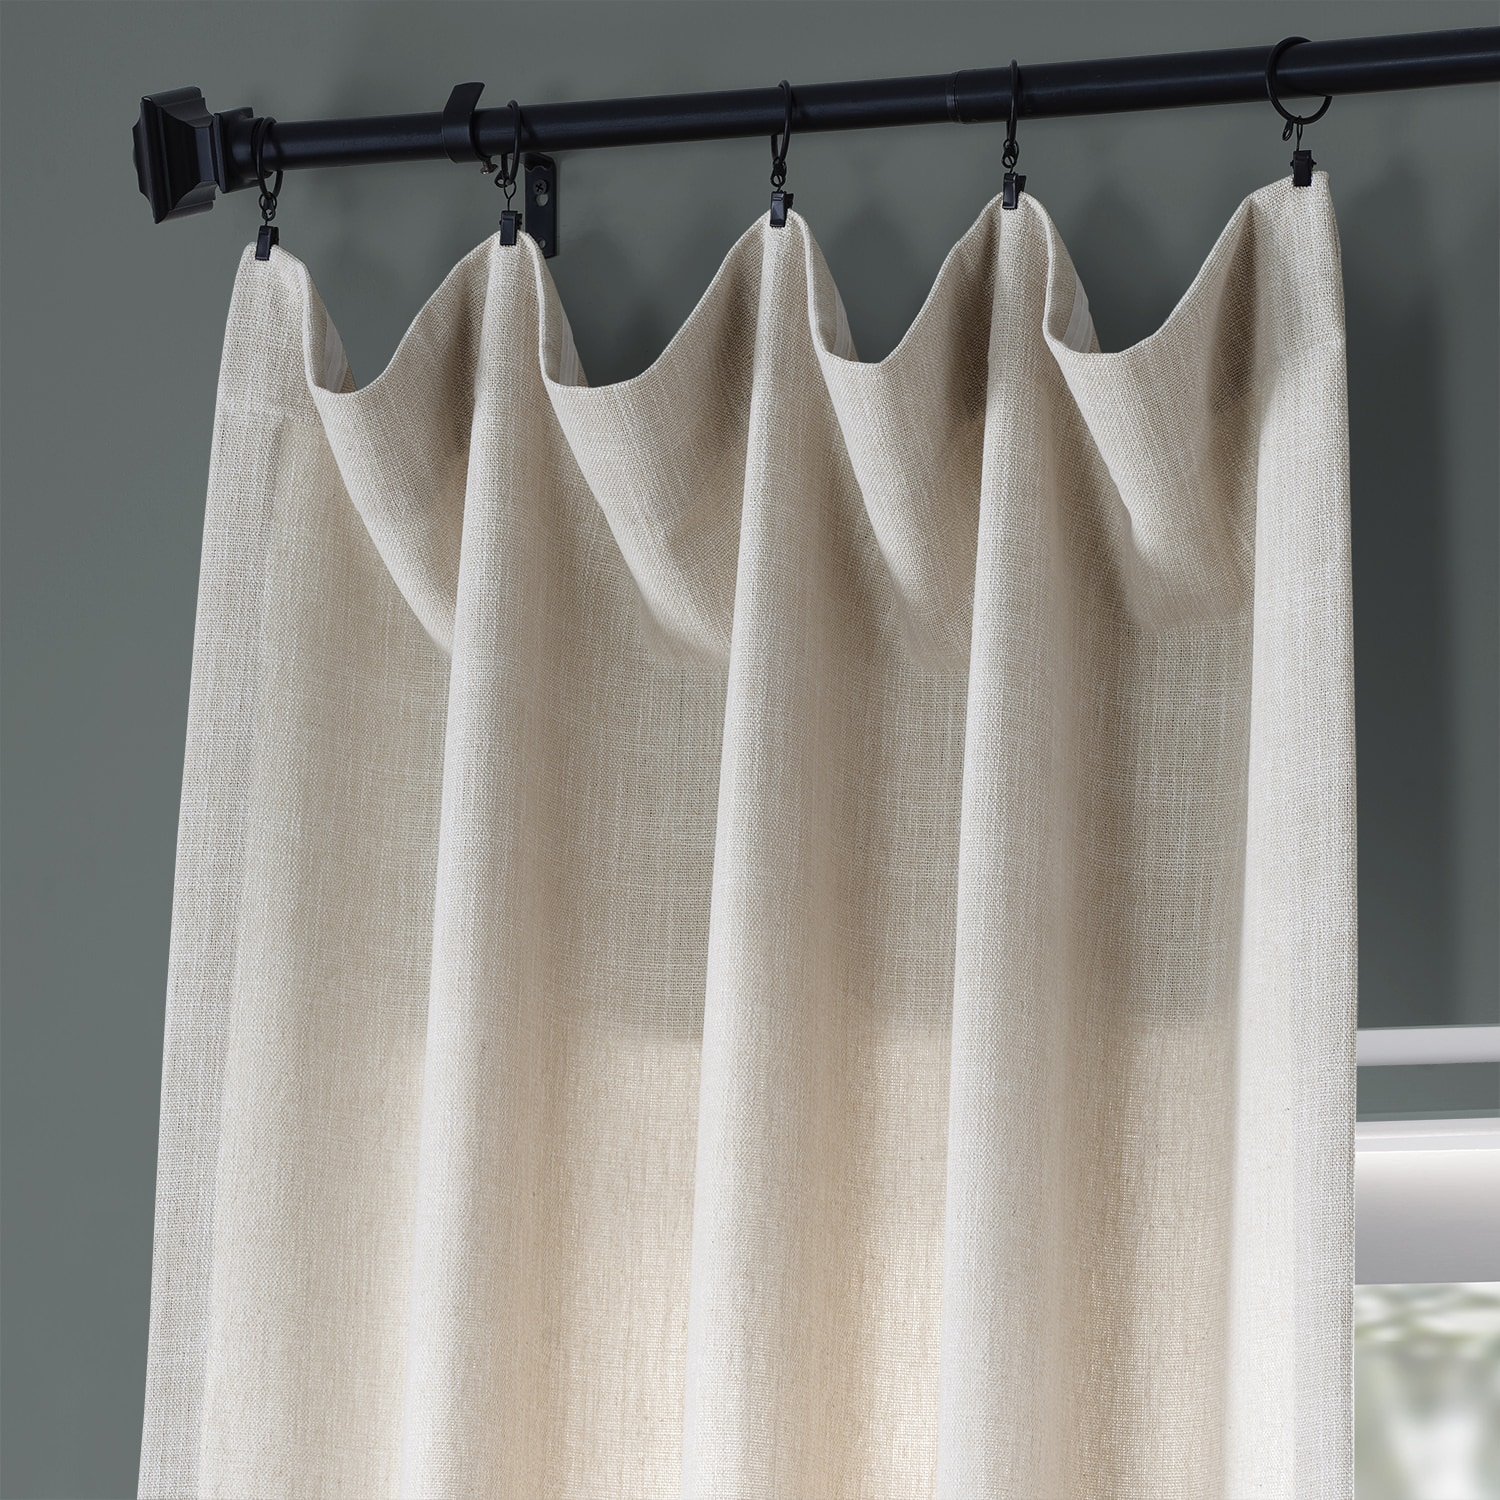 Country Cream Pebble Weave Faux Linen Curtain